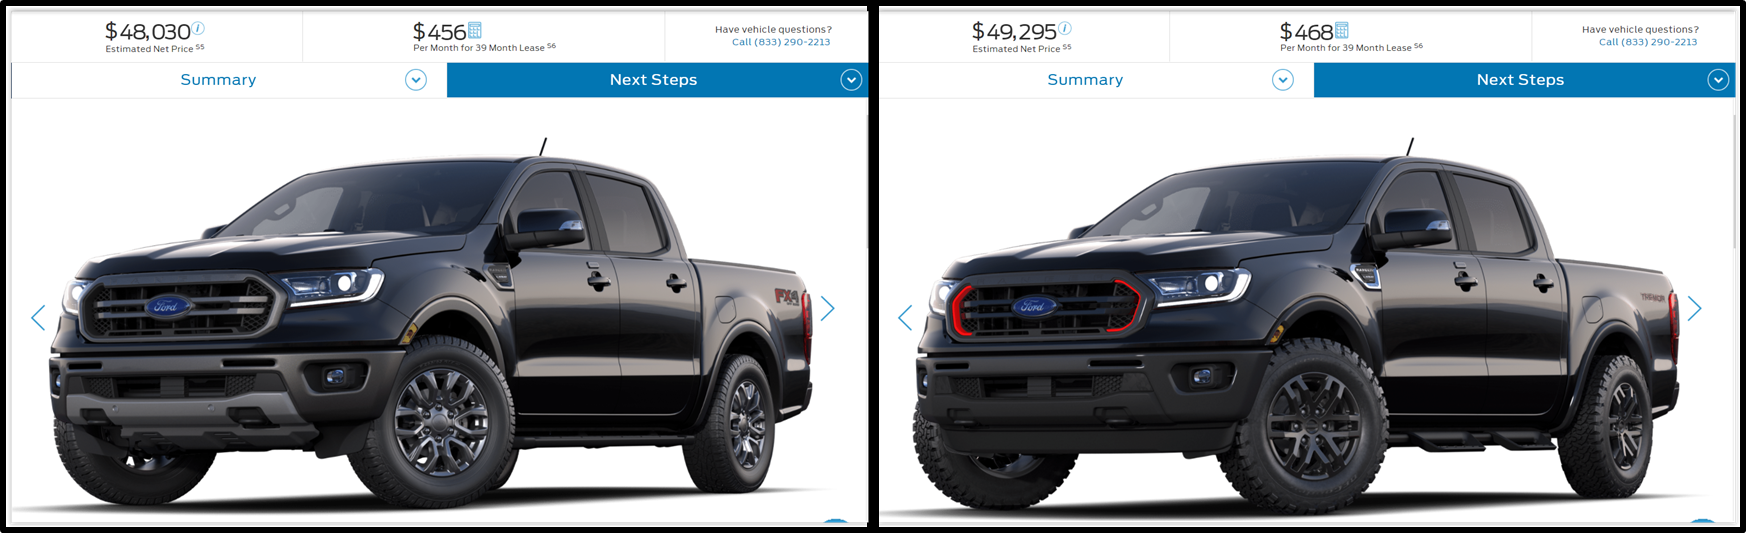 Ranger 2021 side by side 2.png